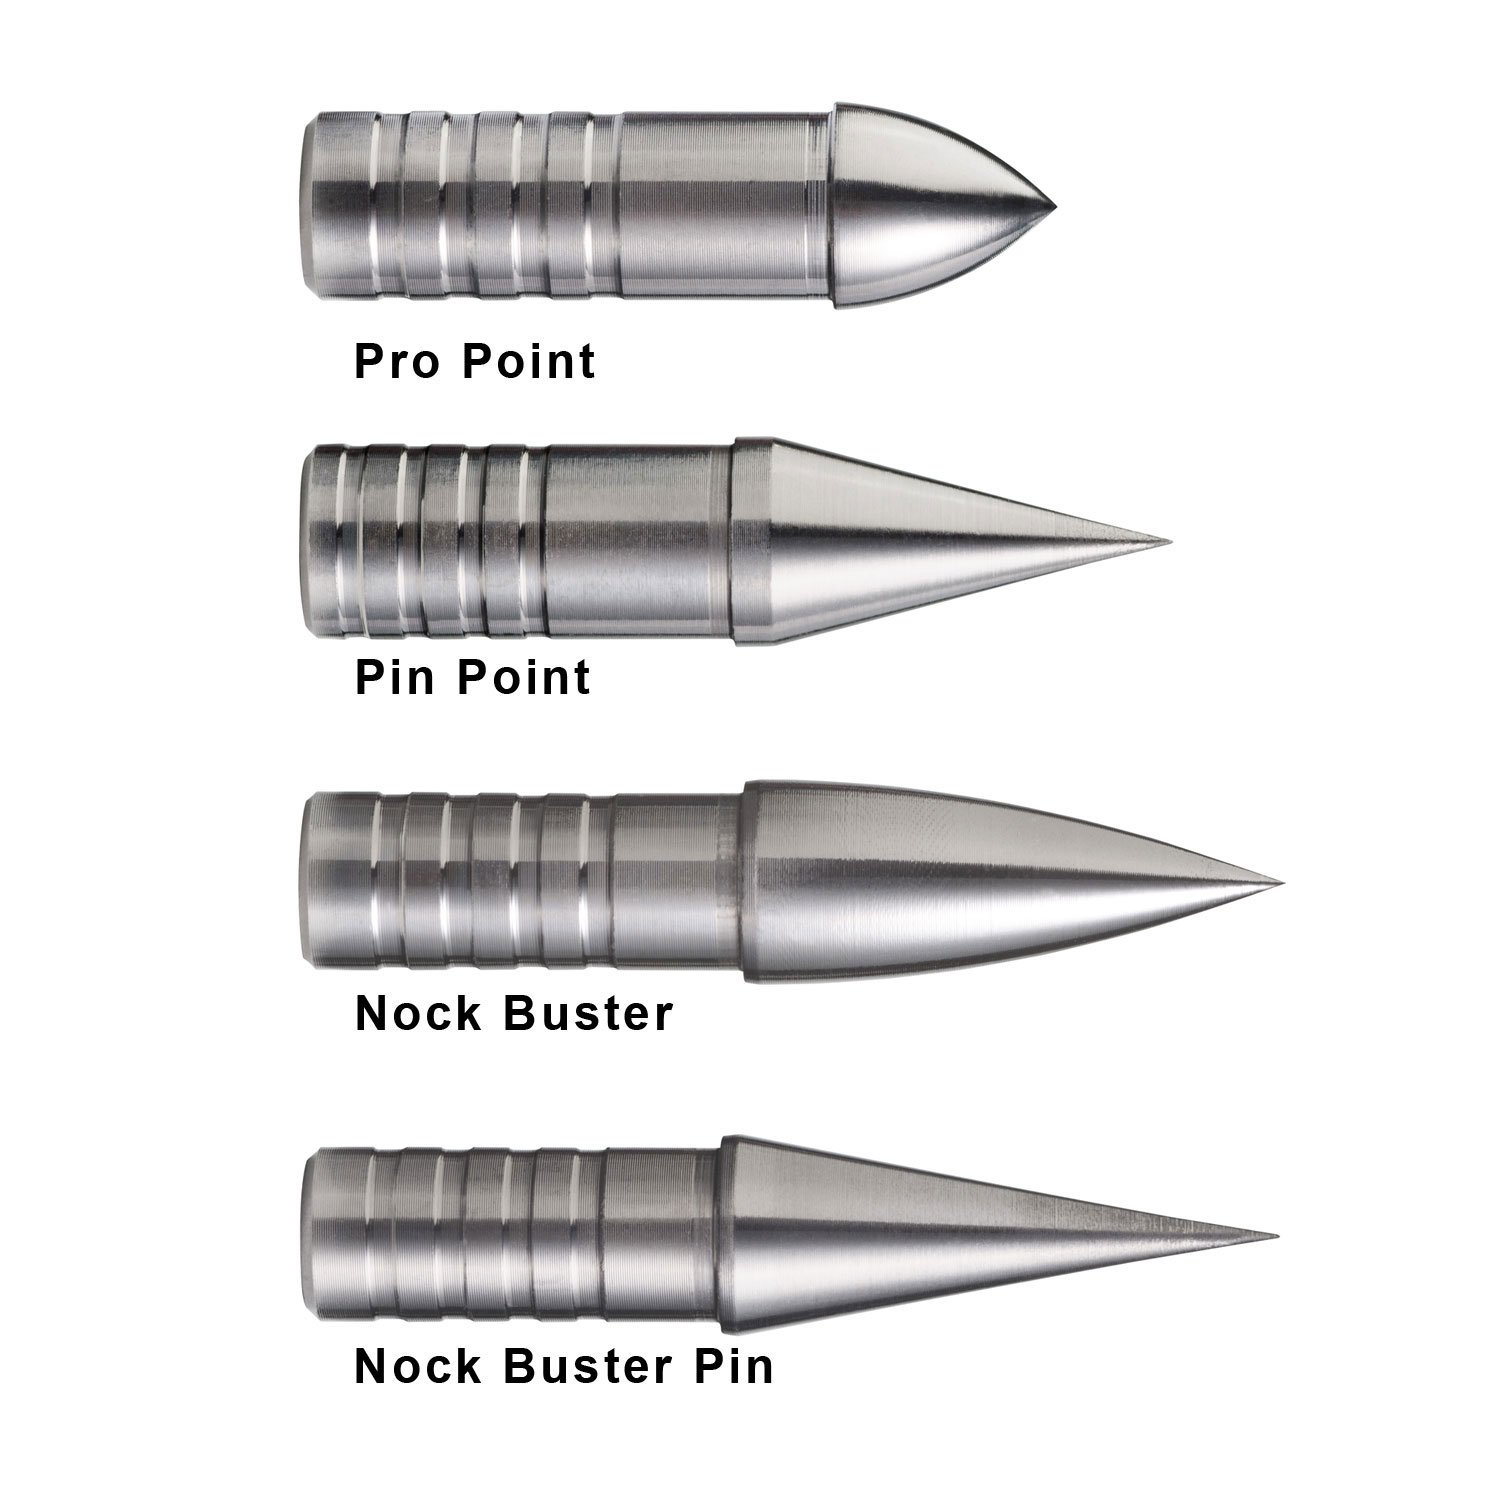 12 pk. Competition Pro Point Pins 2712 225 gr